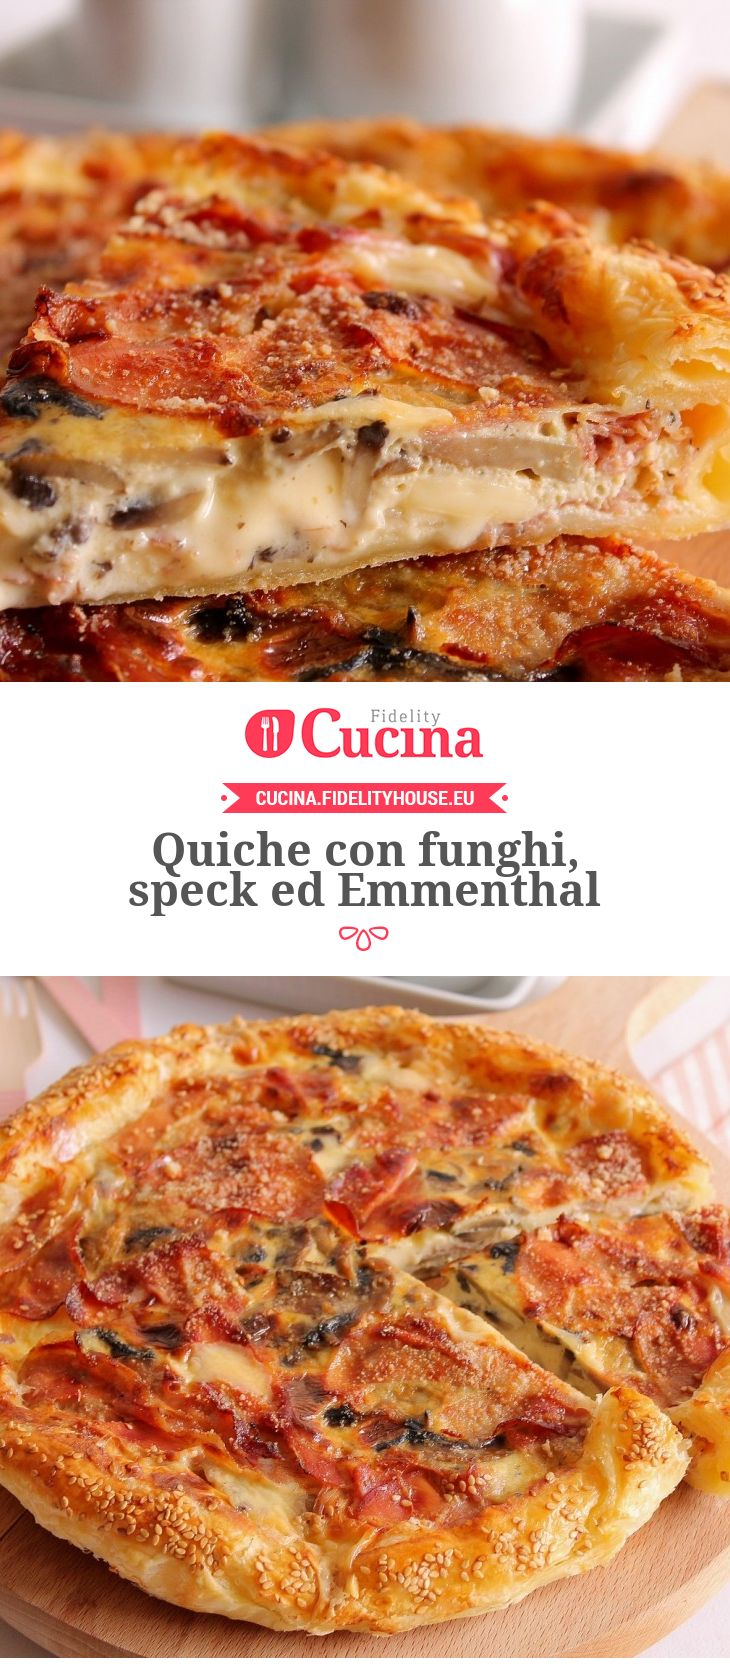 Photo of Quiche with mushrooms, speck and Emmenthal